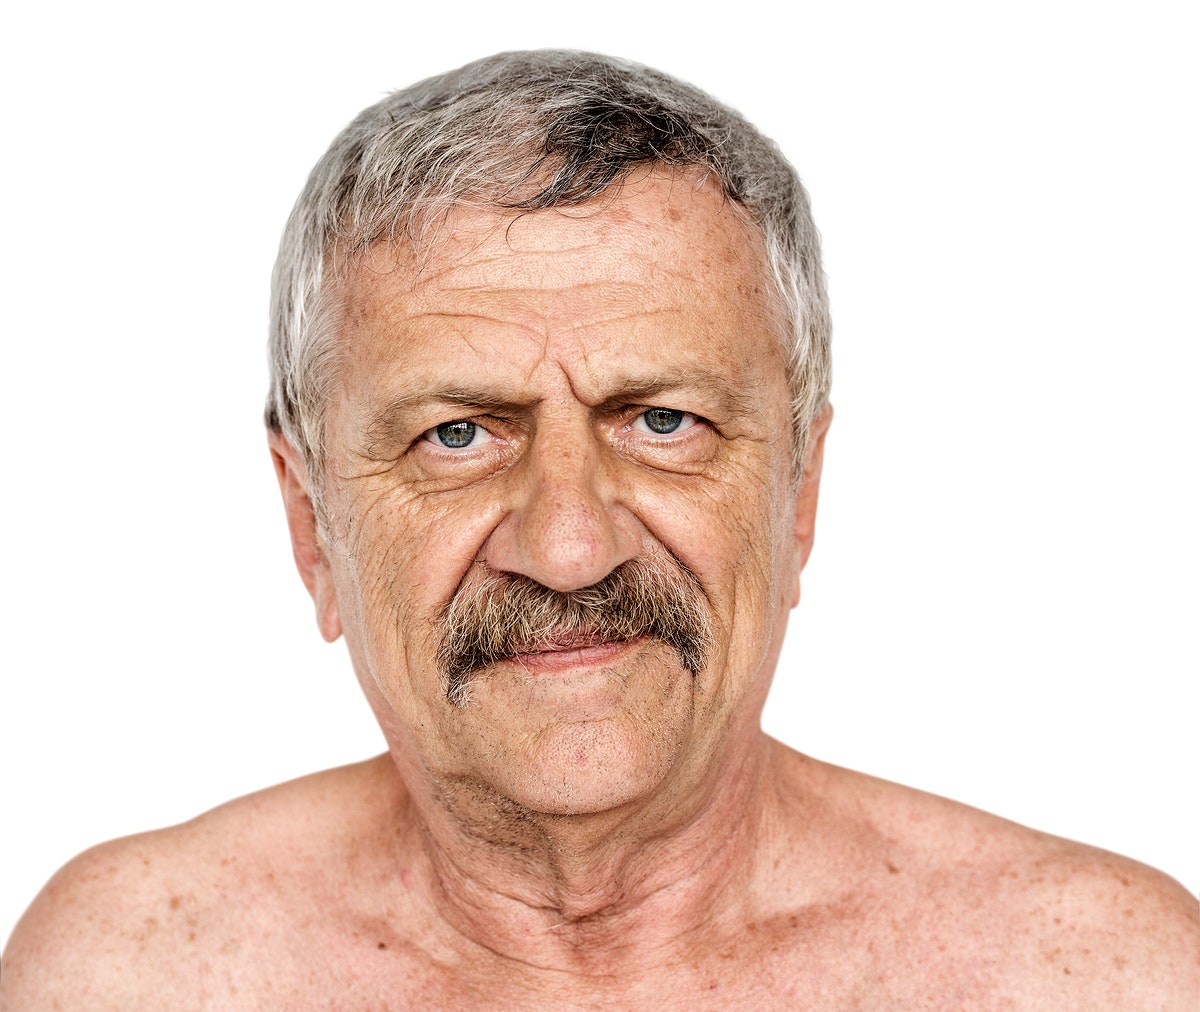 Senior adult man is in a shoot